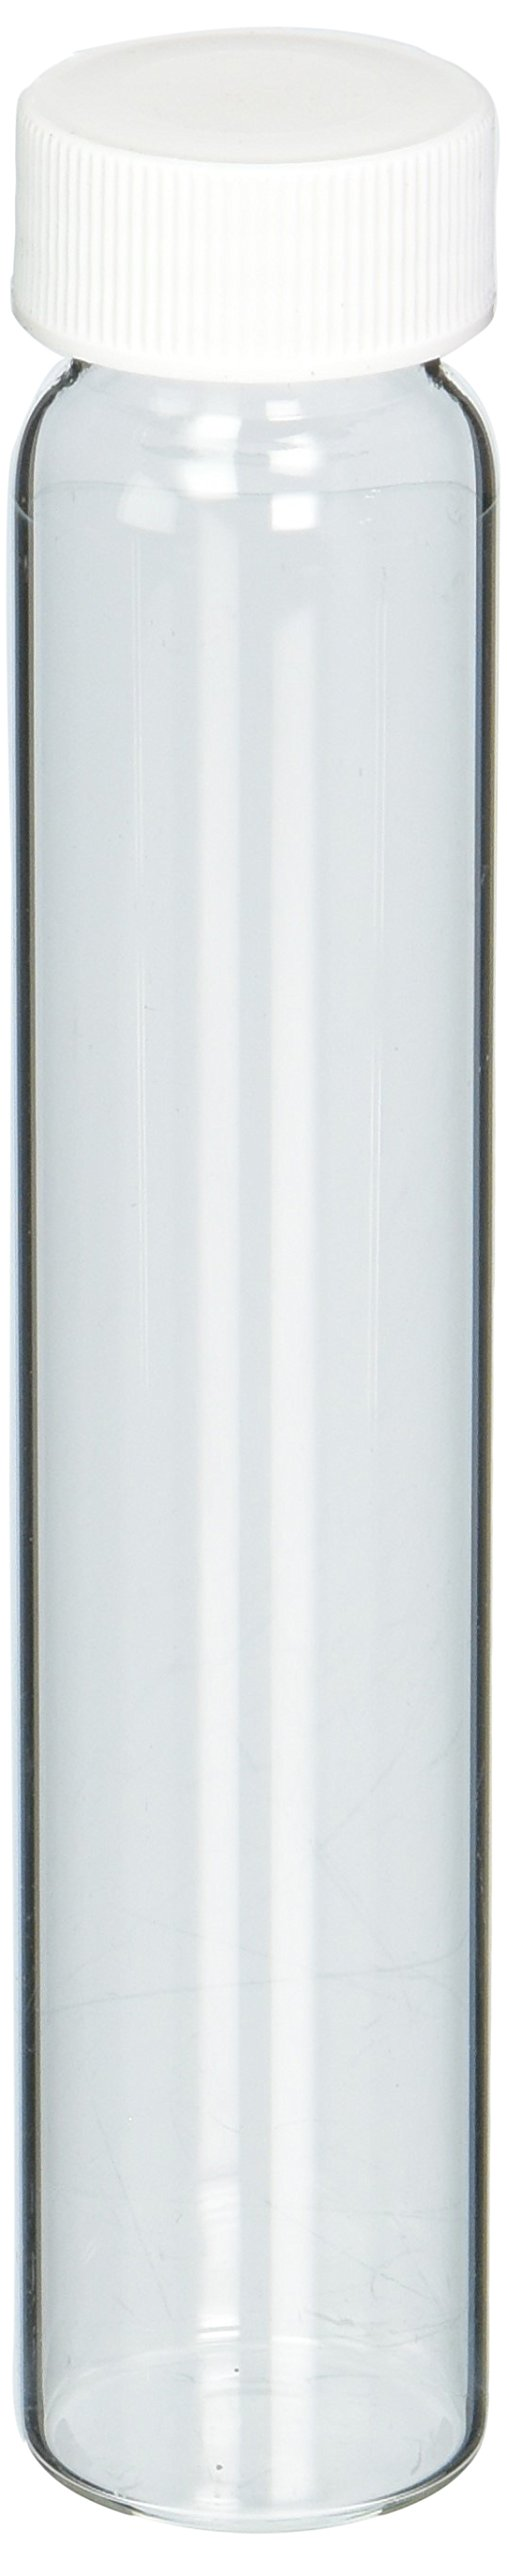 JG Finneran 9-090 Clear Borosilicate Glass Standard VOA Vial with White Polypropylene Solid Top Closure and PTFE Lined, 24-400mm Cap Size, 60mL Capacity (Pack of 100)